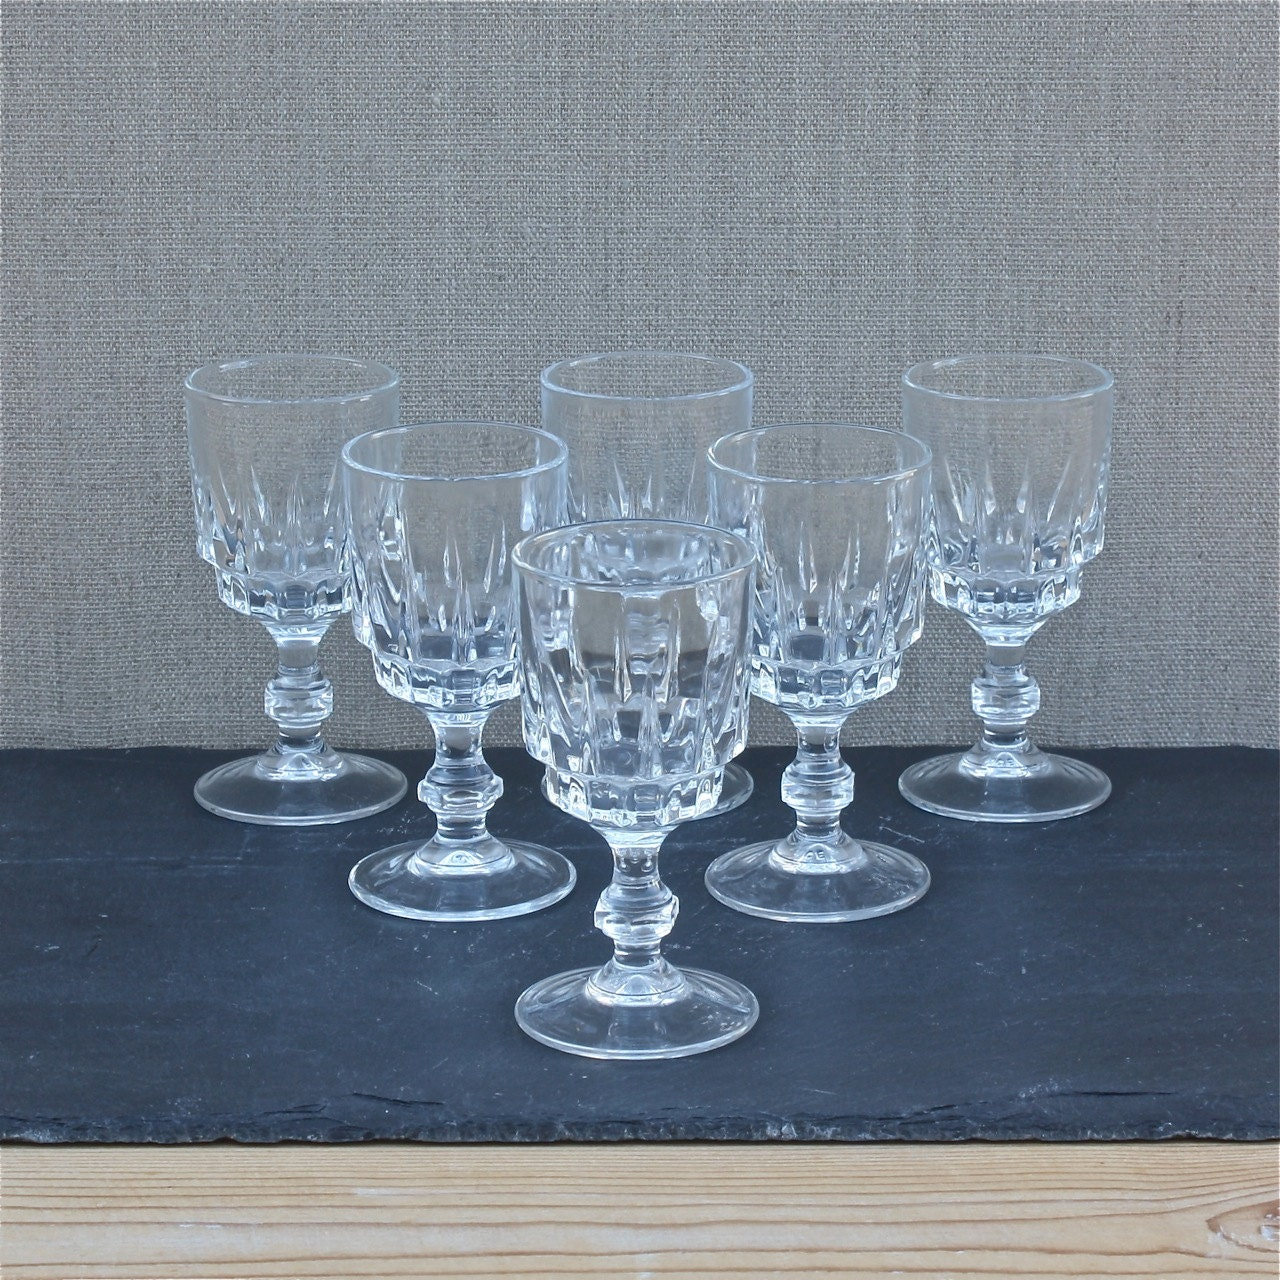 6 verres fran ais vintages verre ap ritif digestif ap ritif etsy. Black Bedroom Furniture Sets. Home Design Ideas